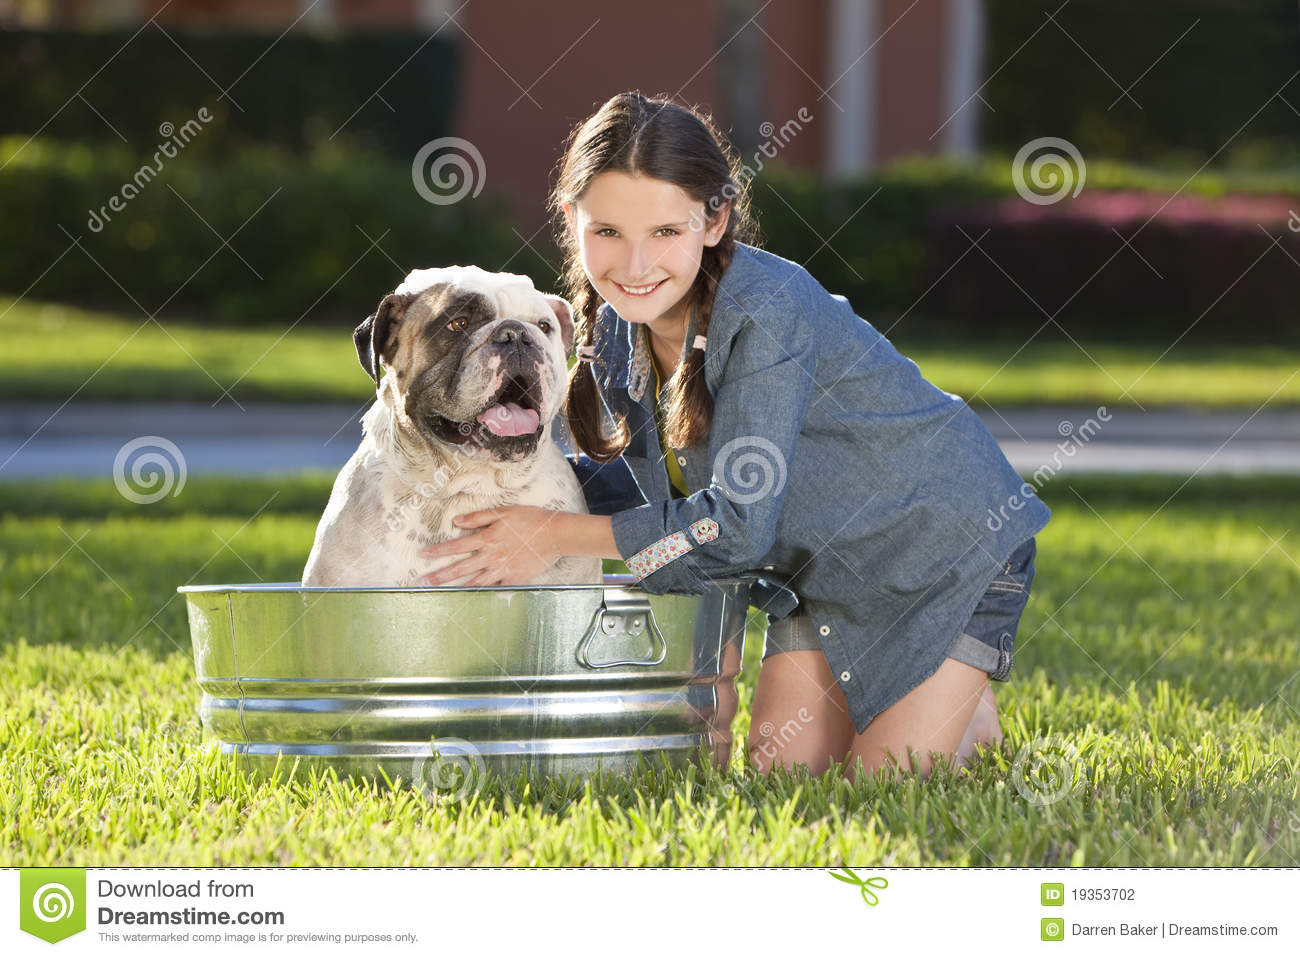 Pretty Young Girl Washing Her Pet Dog In A Tub Stock Photo